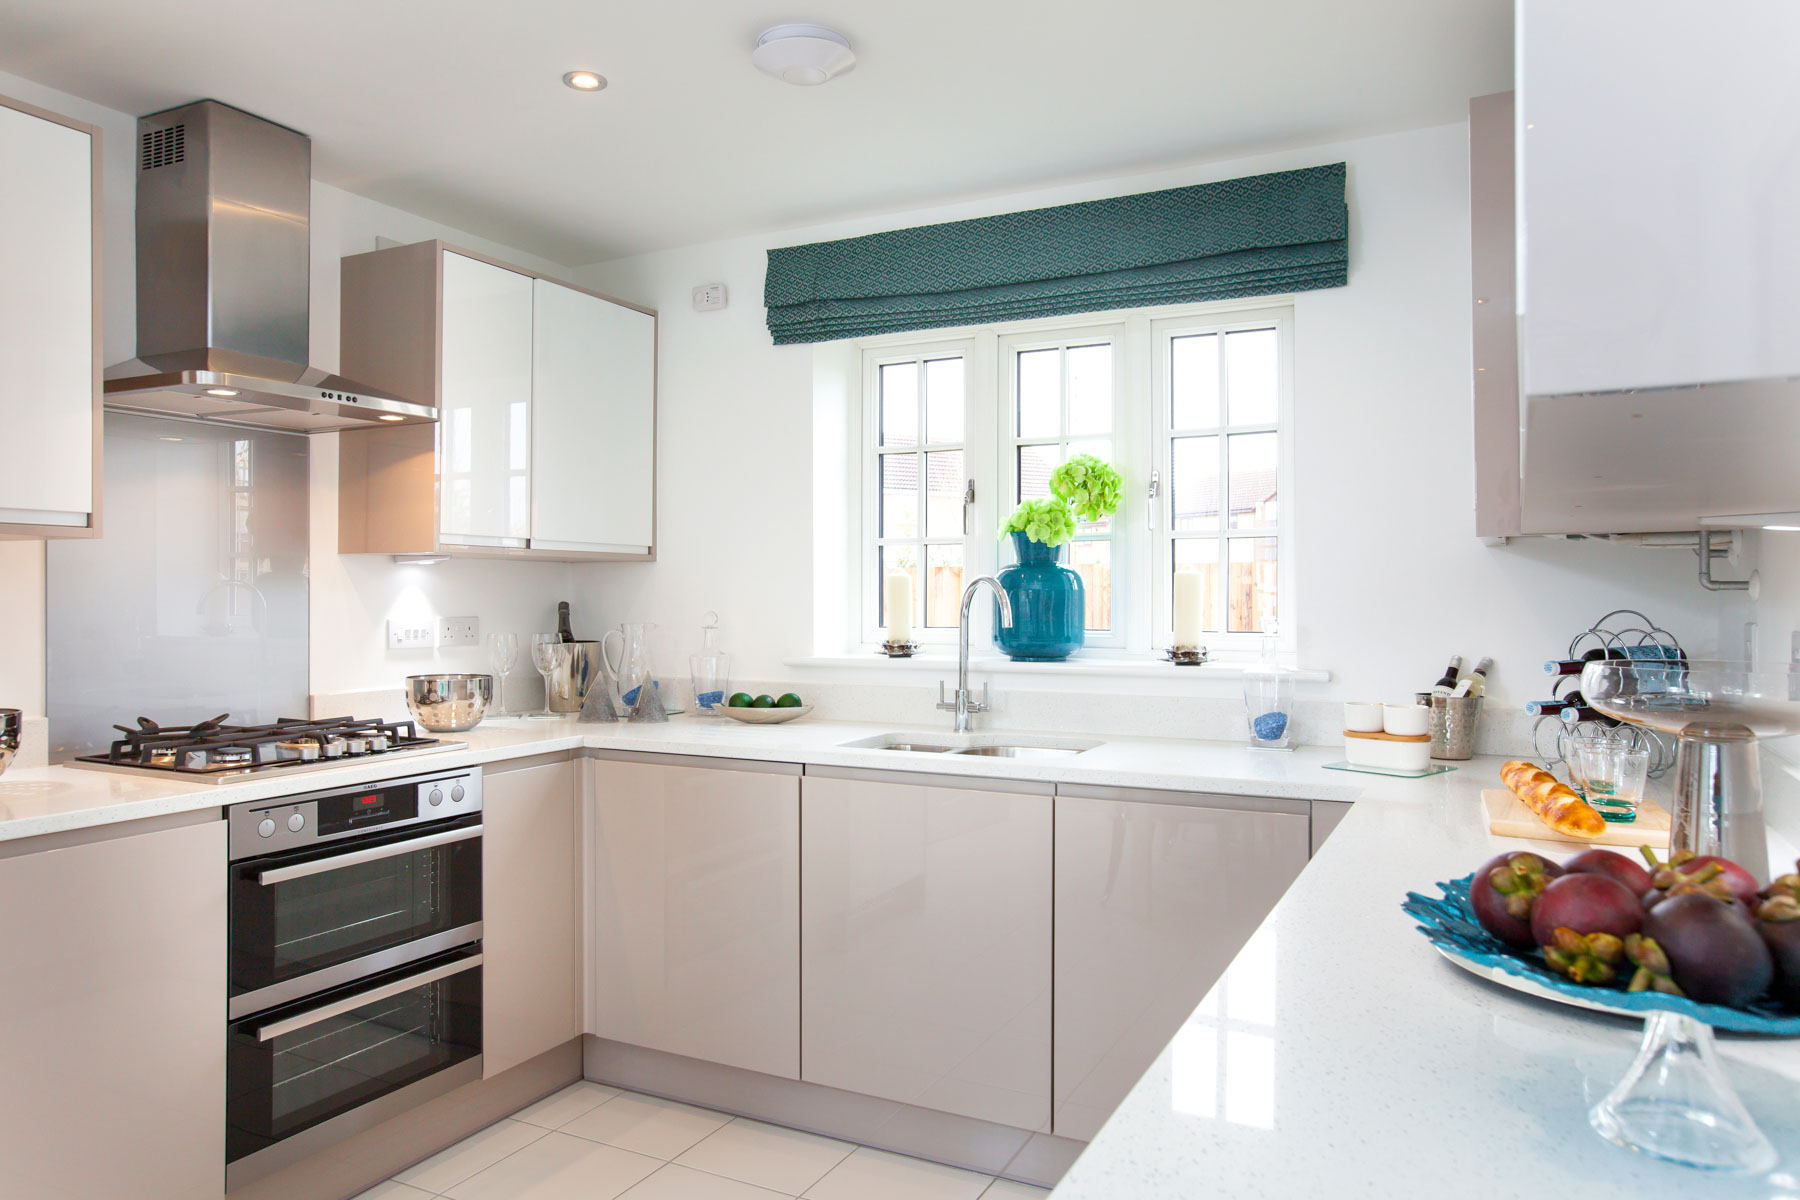 TW Exeter - Hele Park - Yewdale example kitchen